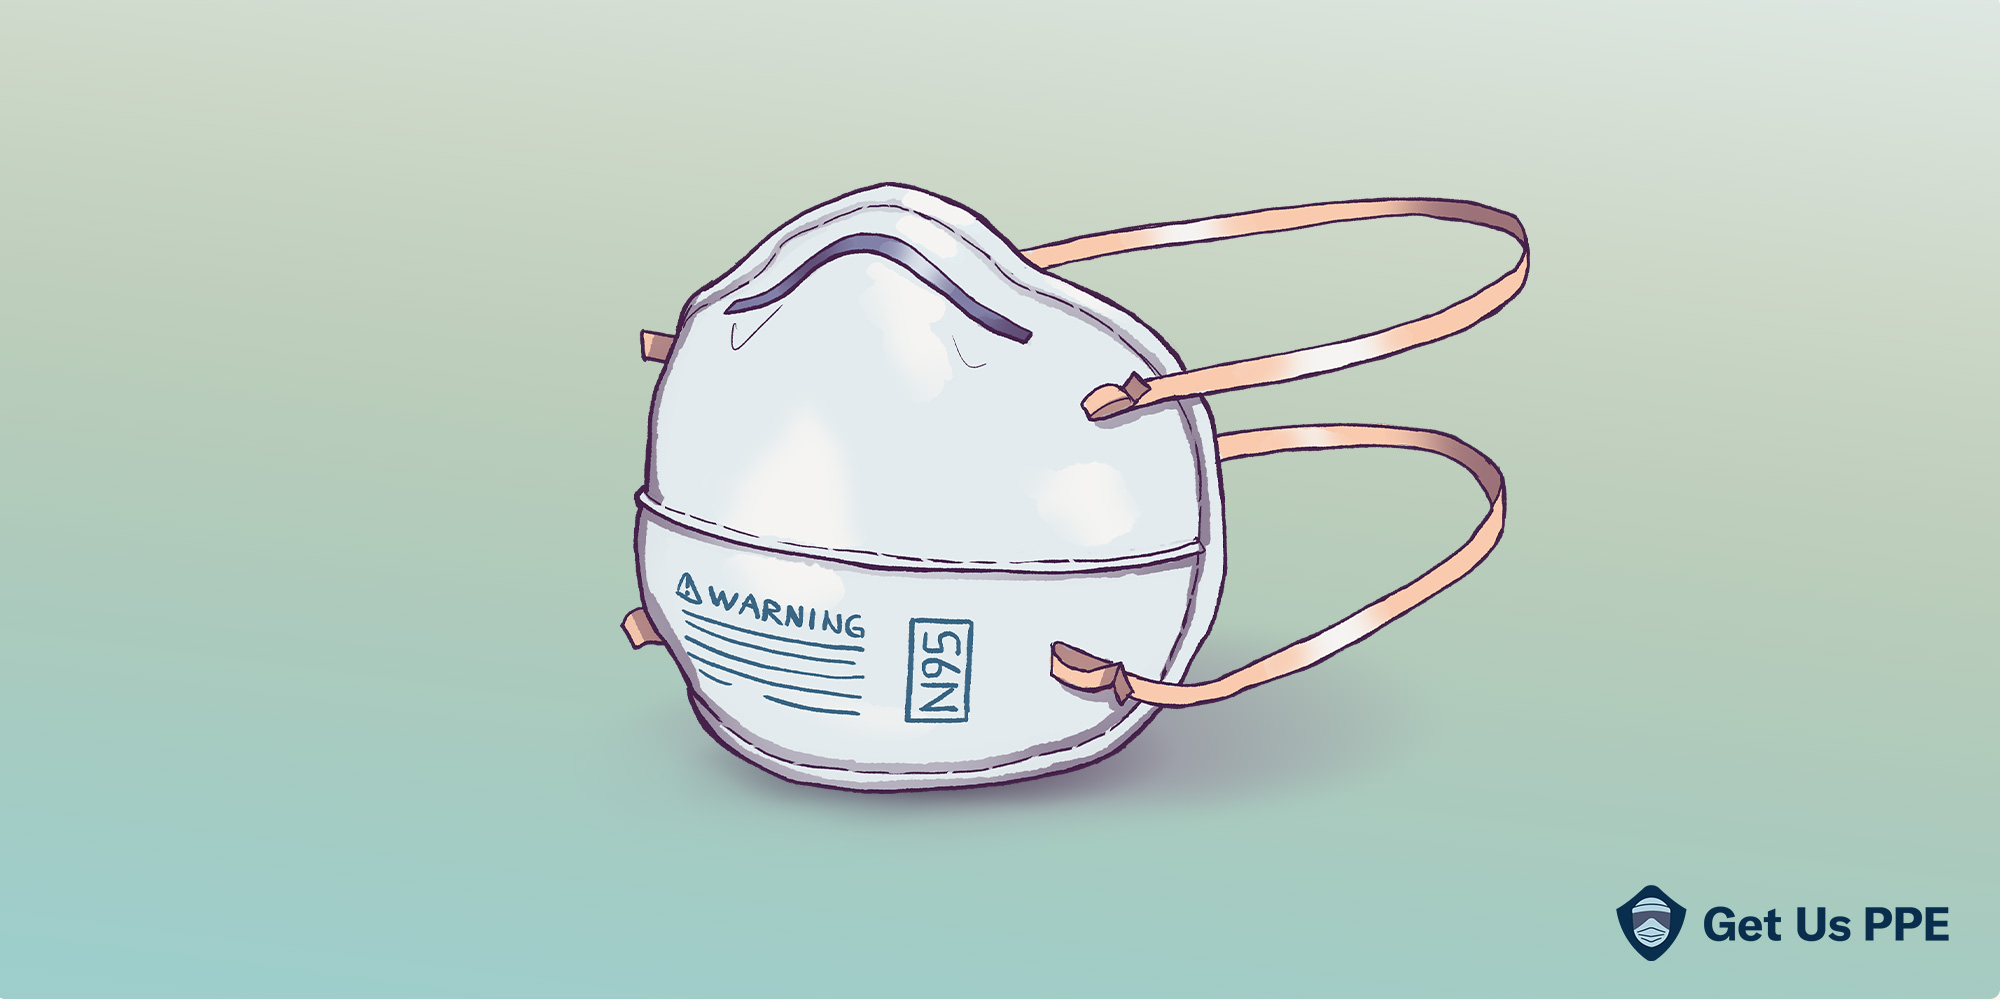 How The N95 Masks Shortage Evolved To A Supply-Demand Disconnect